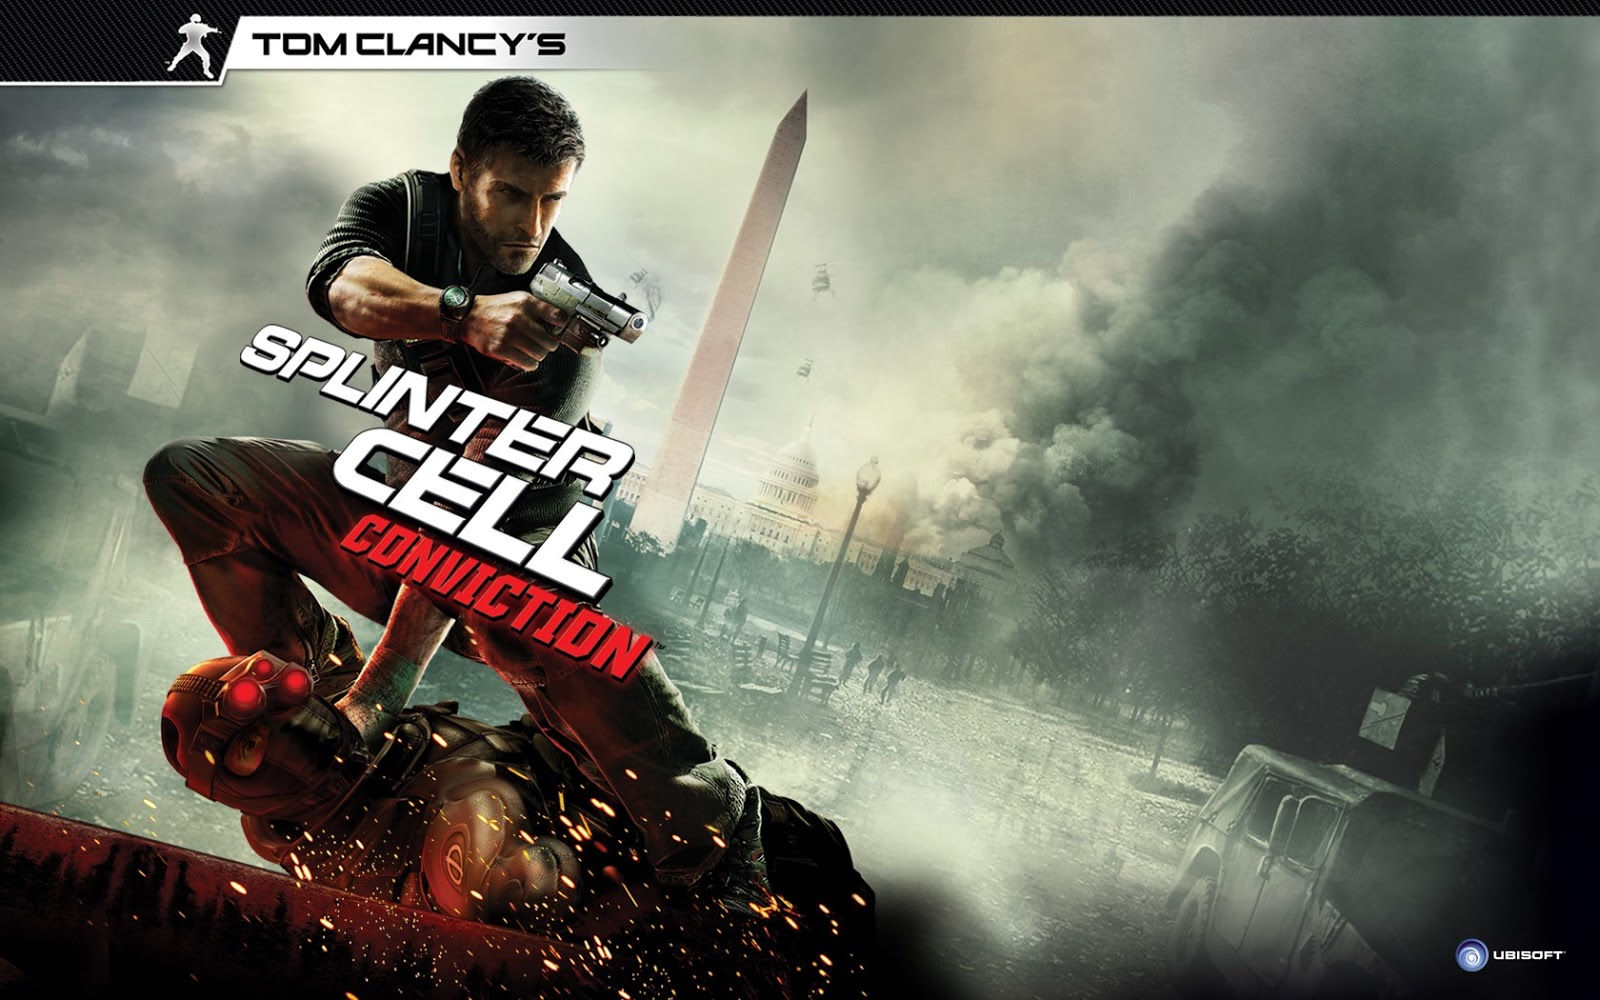 Review: TOM CLANCY'S SPLINTER CELL: CONVICTION (2010